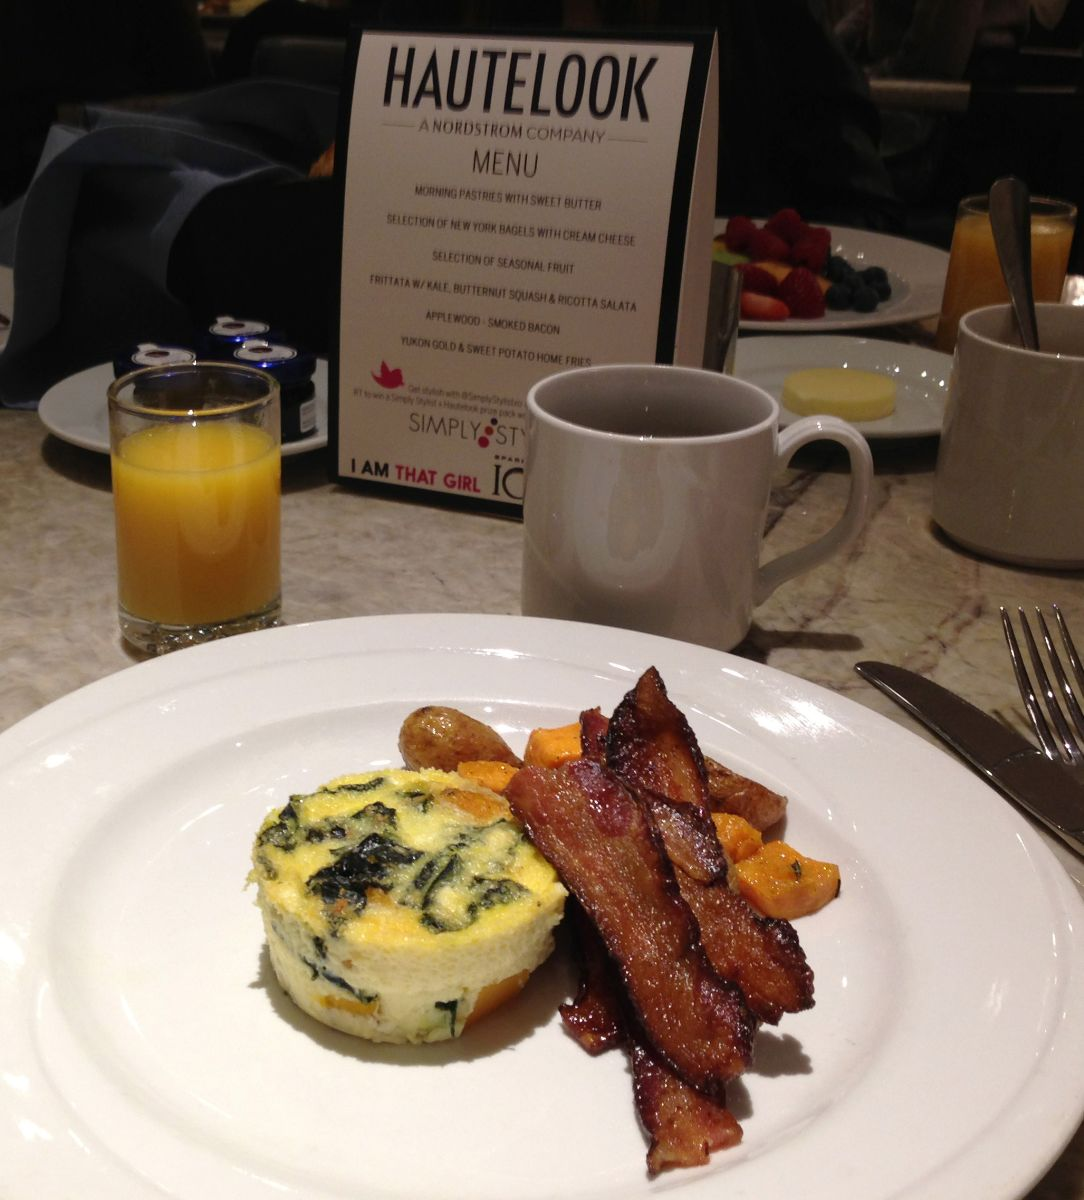 Hautelook brunch park central hotel nyc